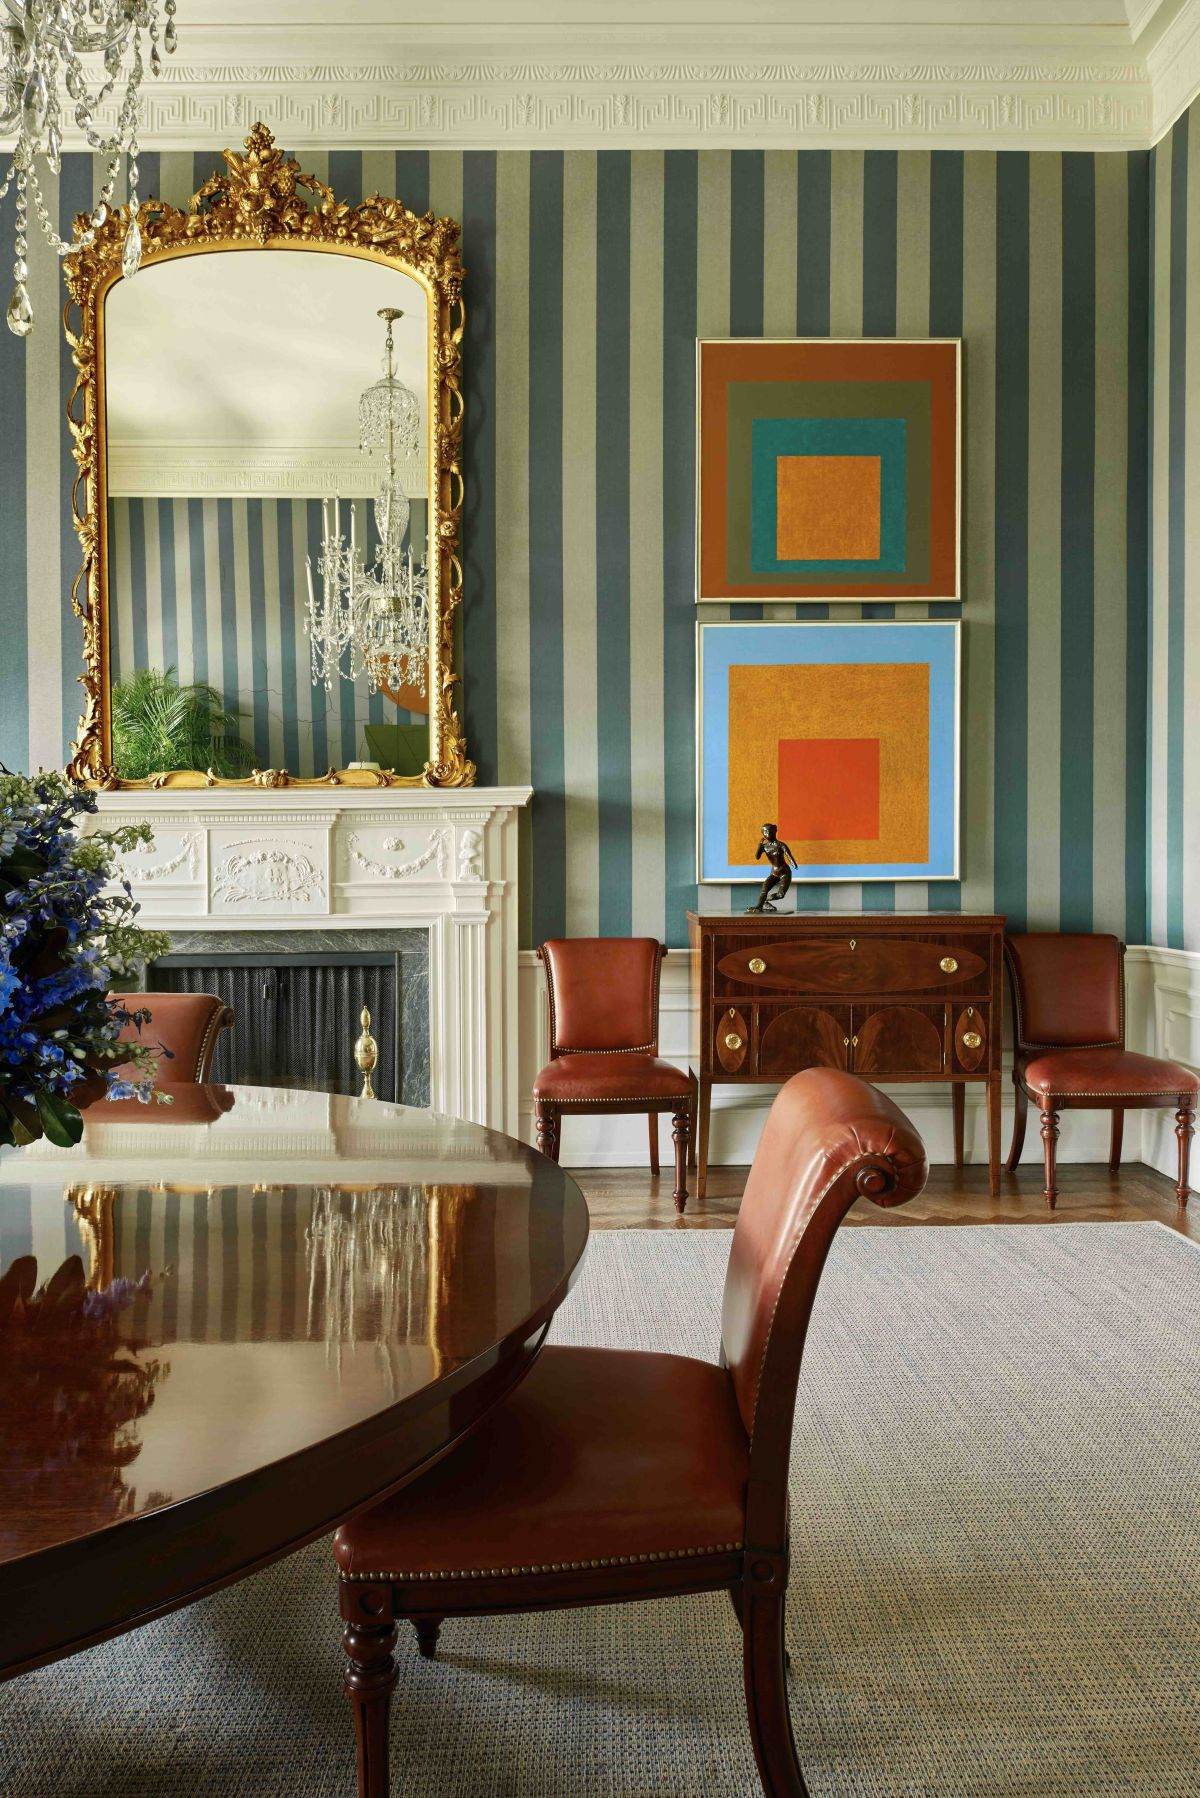 Designing History. The Extraordinary Art & Style of the Obama White House, by Michael S. Smith (Foreword by Michelle Obama). Rizzoli.